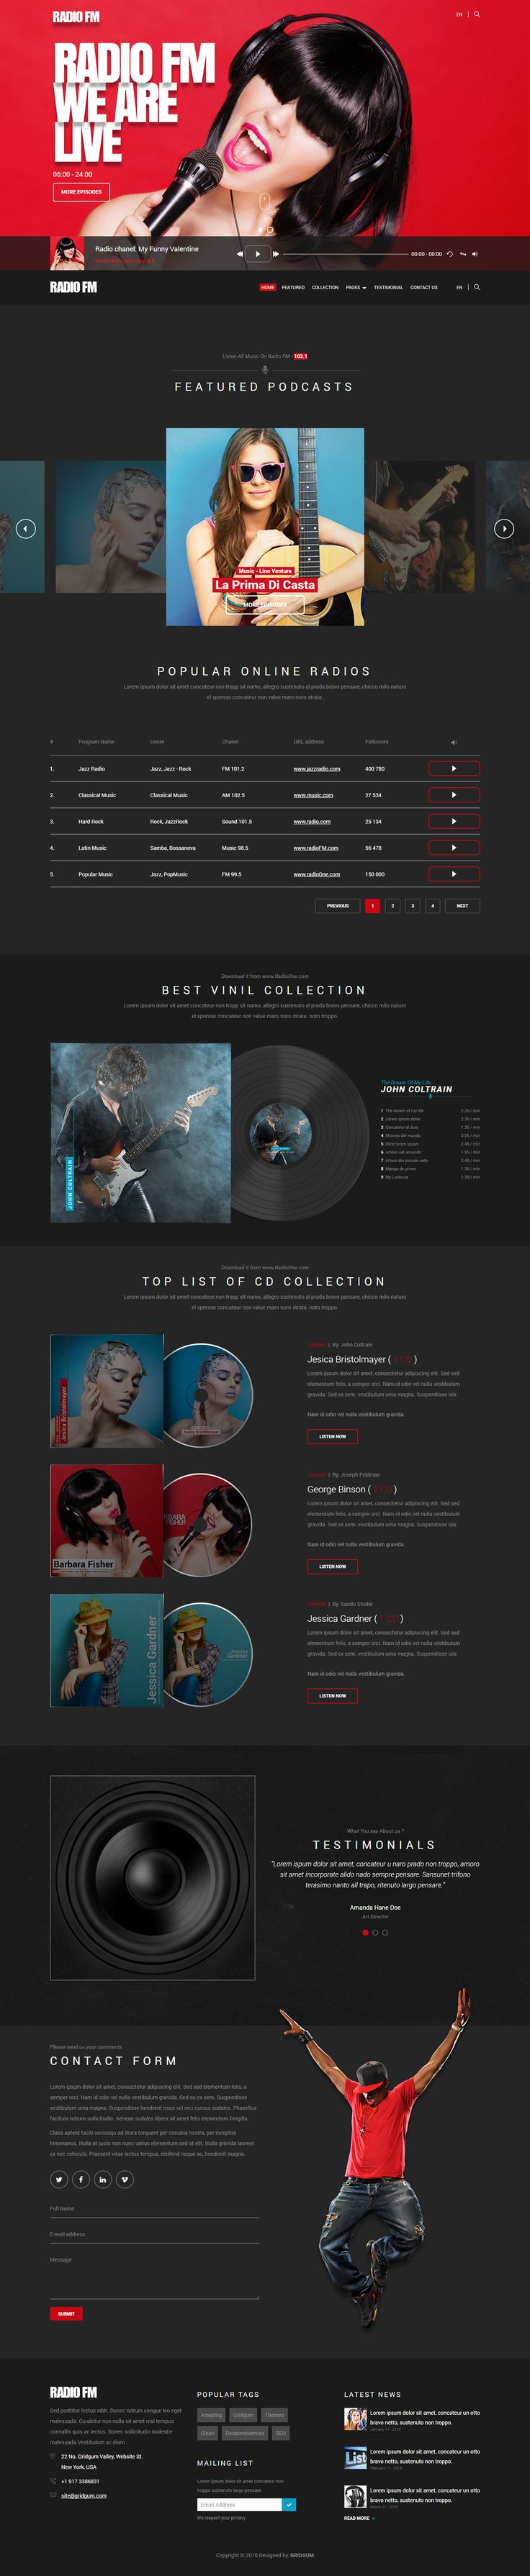 144 best Bootstrap Templates images on Pinterest | Html templates ...